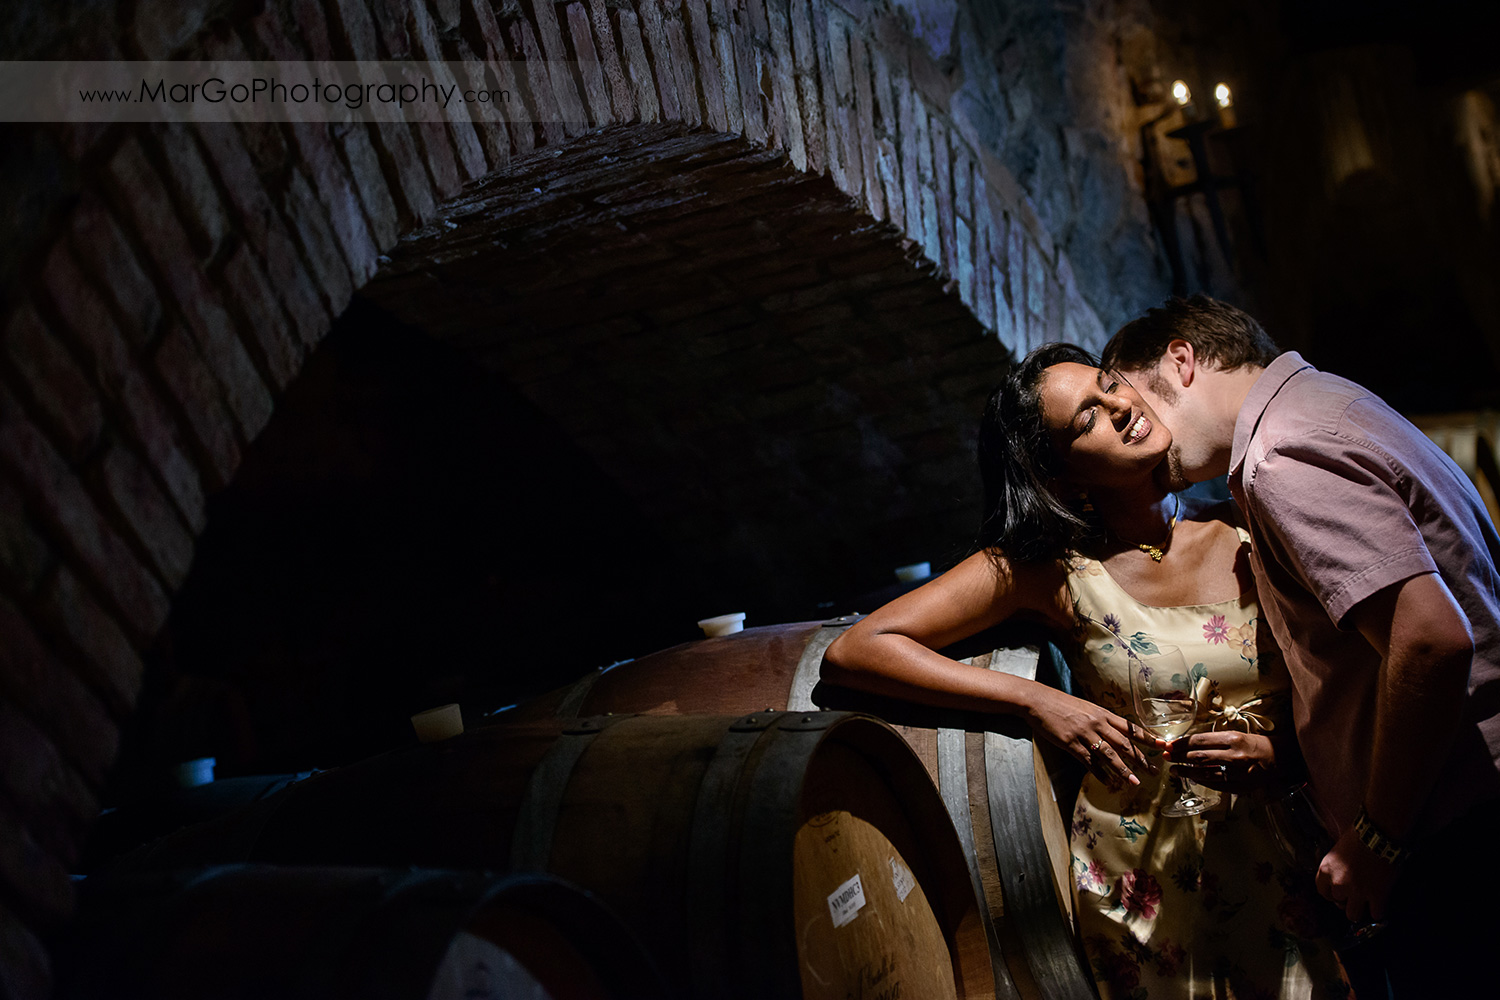 man in pink shirt kissing Indian woman in flower dress kissing in the wine cellar during engagement session at Castello di Amorosa in Calistoga